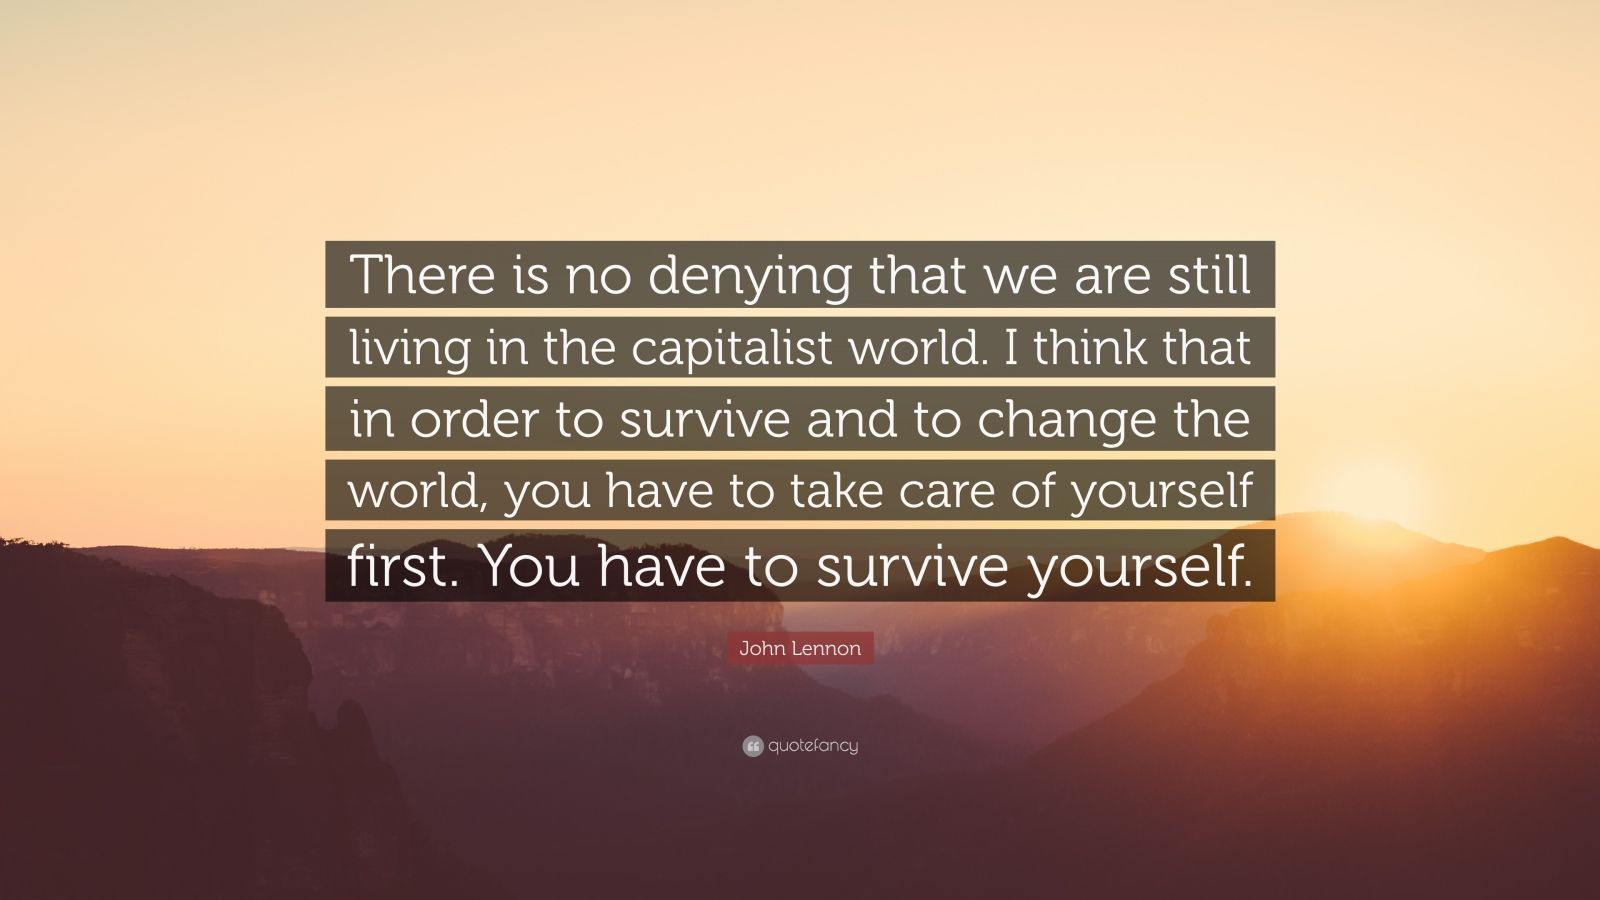 """John Lennon Quote: """"There is no denying that we are still living in the capitalist world. I think that in order to survive and to change the world, you have to take care of yourself first. You have to survive yourself."""""""